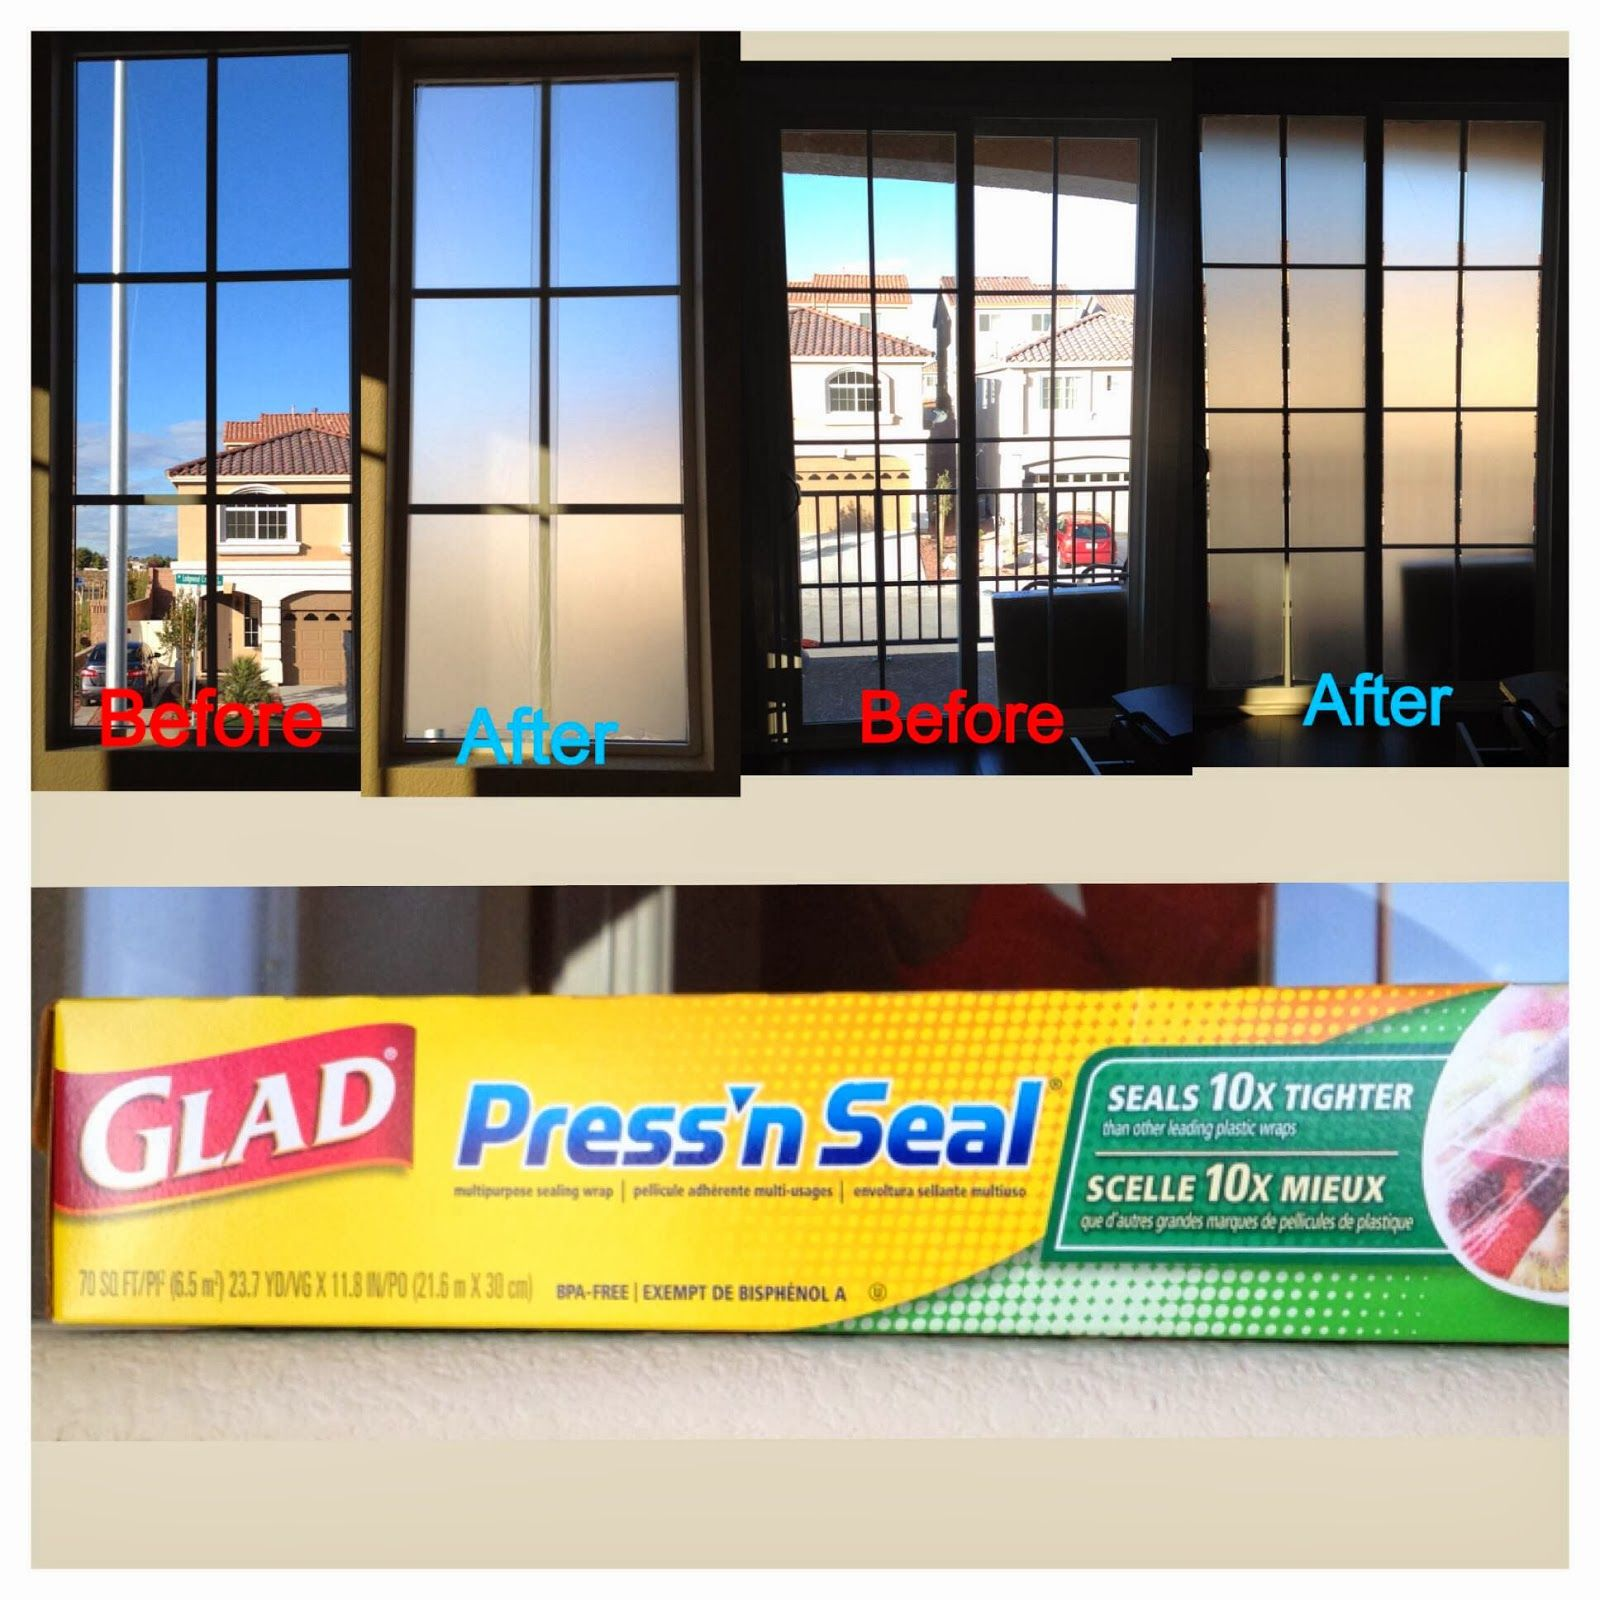 cheap and easy temporary privacy window covering | Window privacy, Window coverings, Diy window